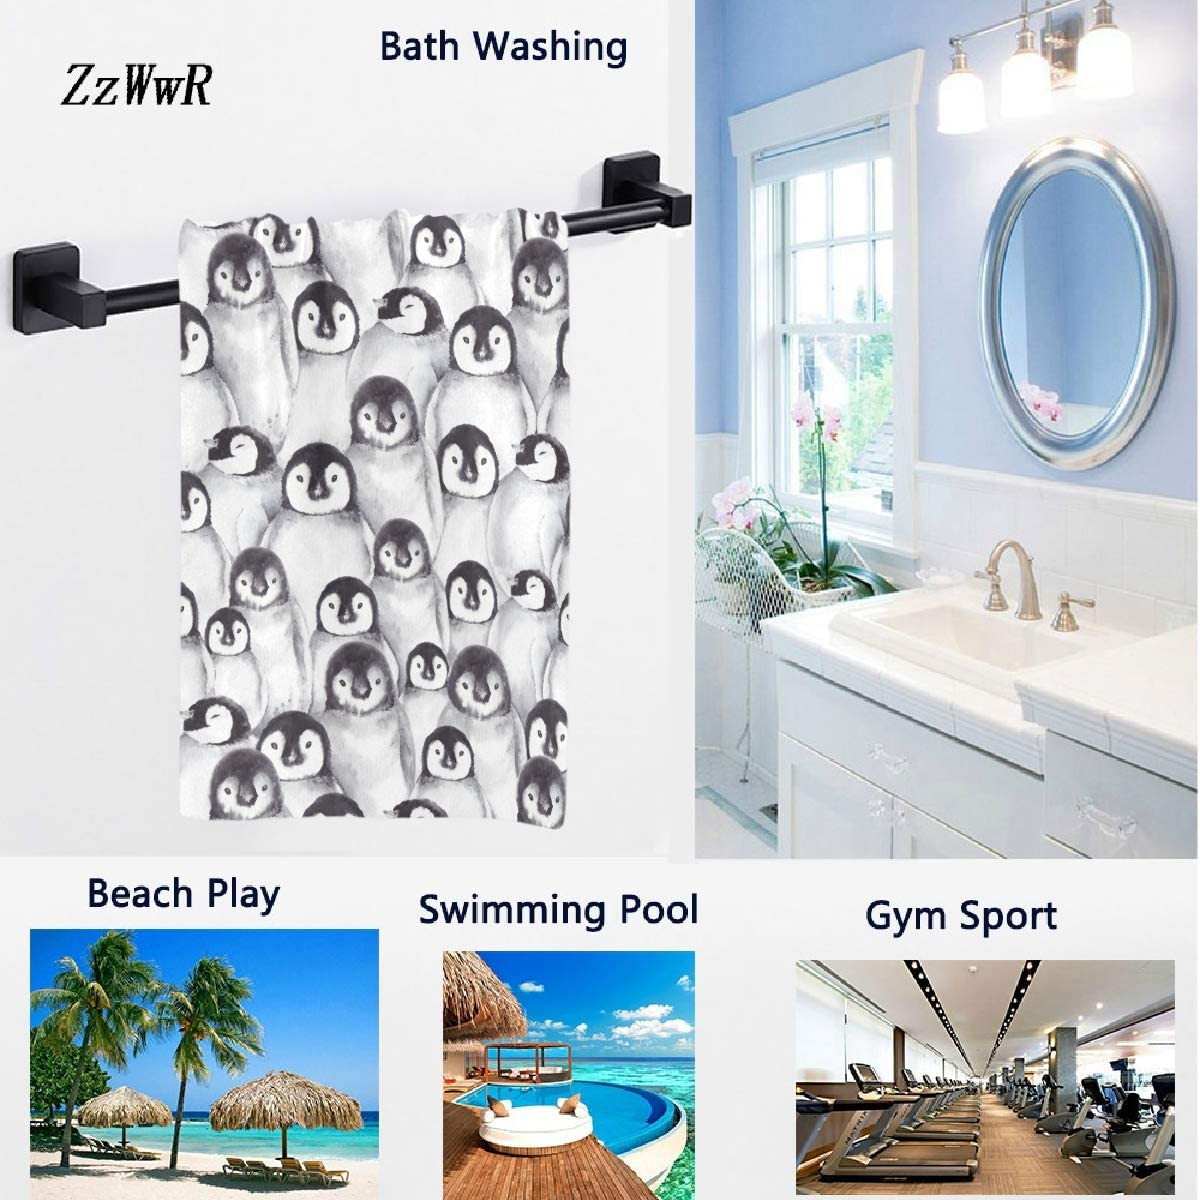 16 x 30 Inches,Black White Hotel Gym and Spa ZzWwR Cute Baby Penguins Sketch Pattern Soft Highly Absorbent Guest Large Home Decorative Hand Towels Multipurpose for Bathroom